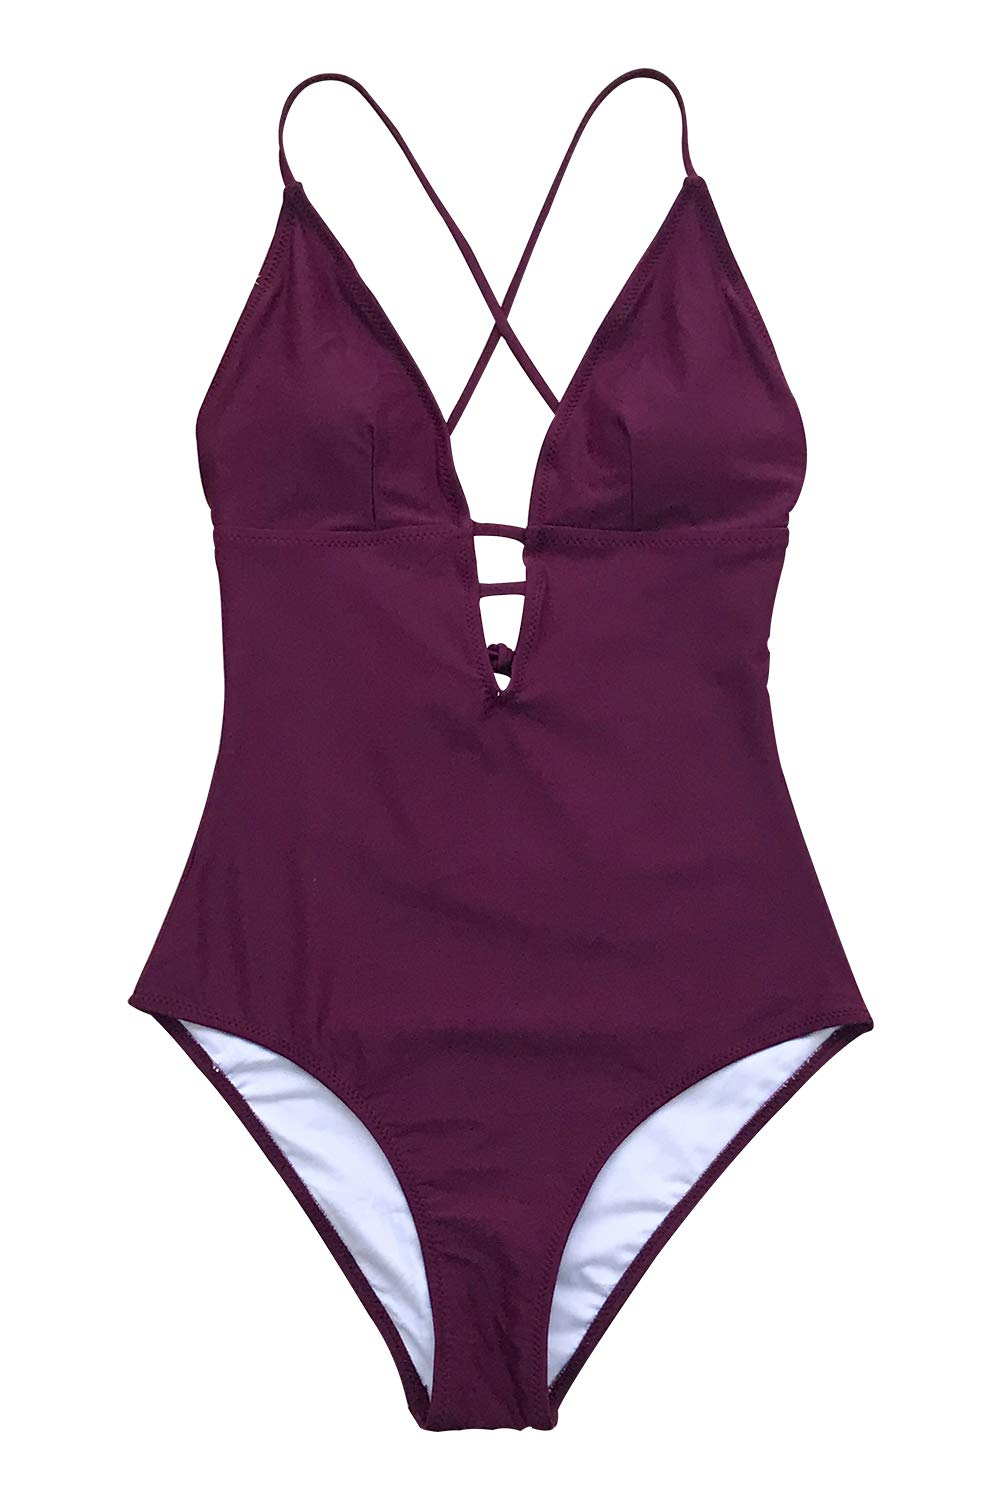 CUPSHE Women's Shirring Design V-Neck Low Back One Piece Swimsuit (X-Small (USA 0/2), Plum)